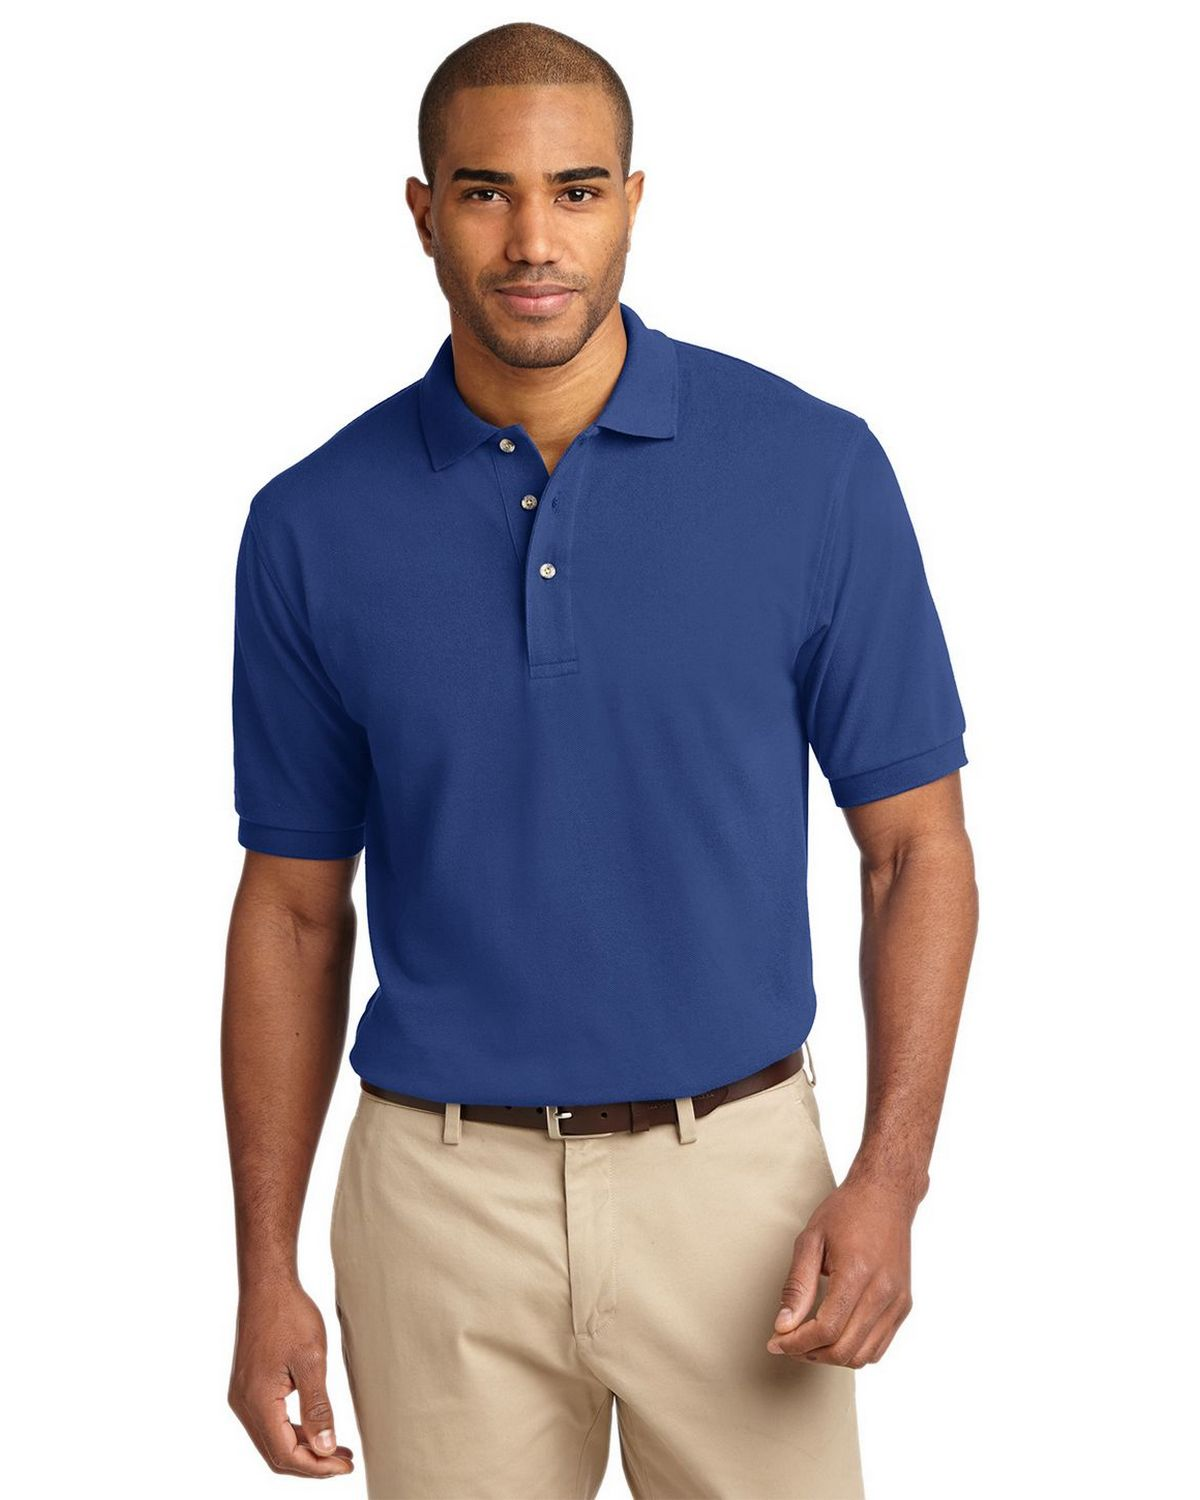 Port Authority K420 Pique Knit Polo - Royal - XS